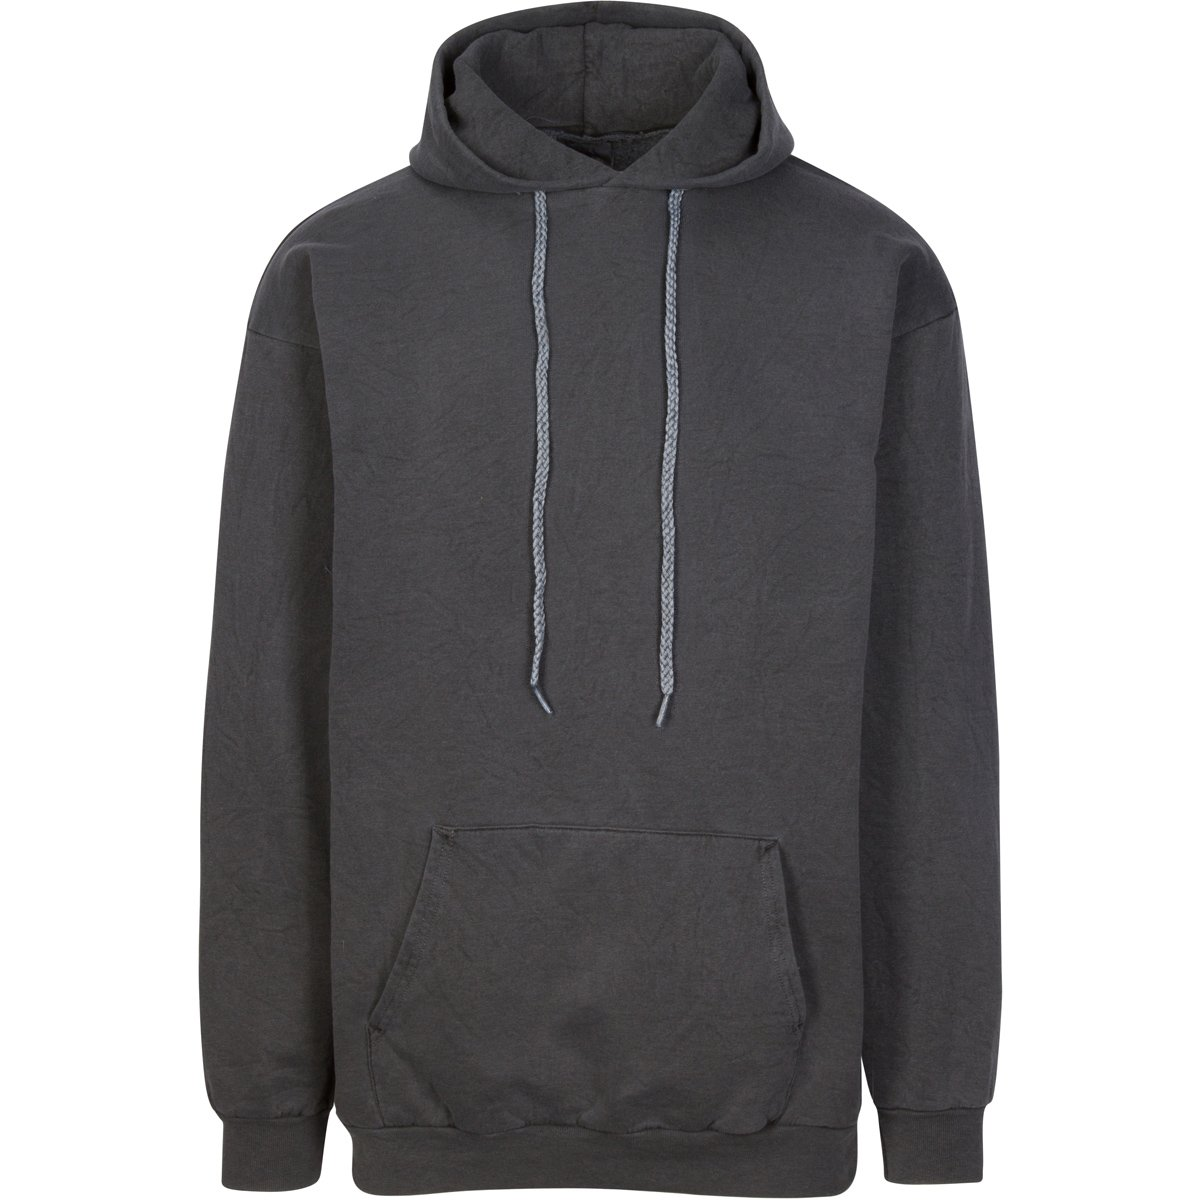 4e84570dad Have It Tall Men s Pigment Dyed Heavyweight Hoodie Sweatshirt at Amazon  Men s Clothing store